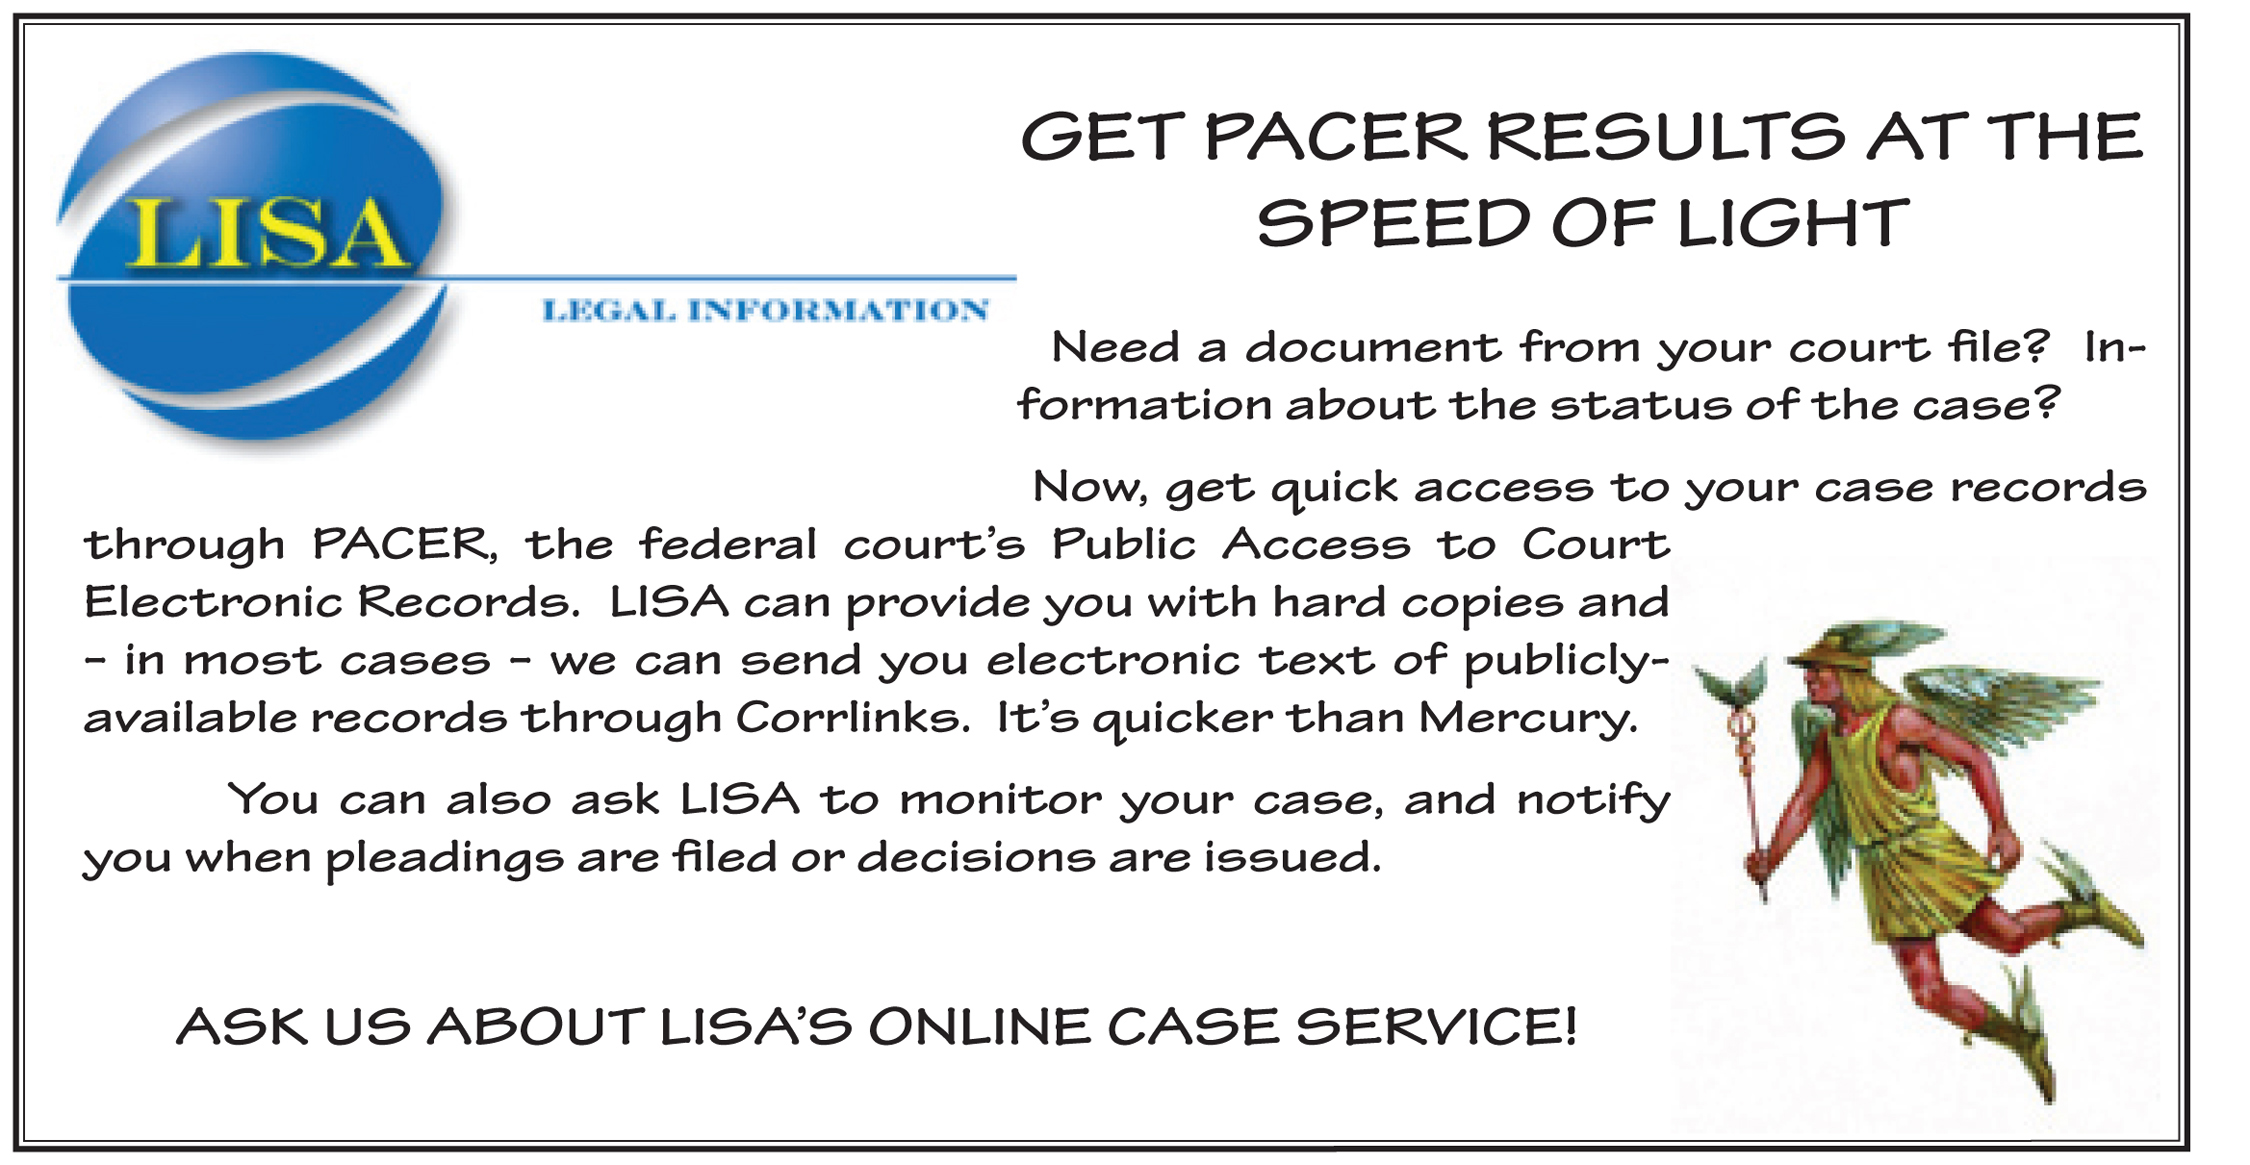 PACER ad